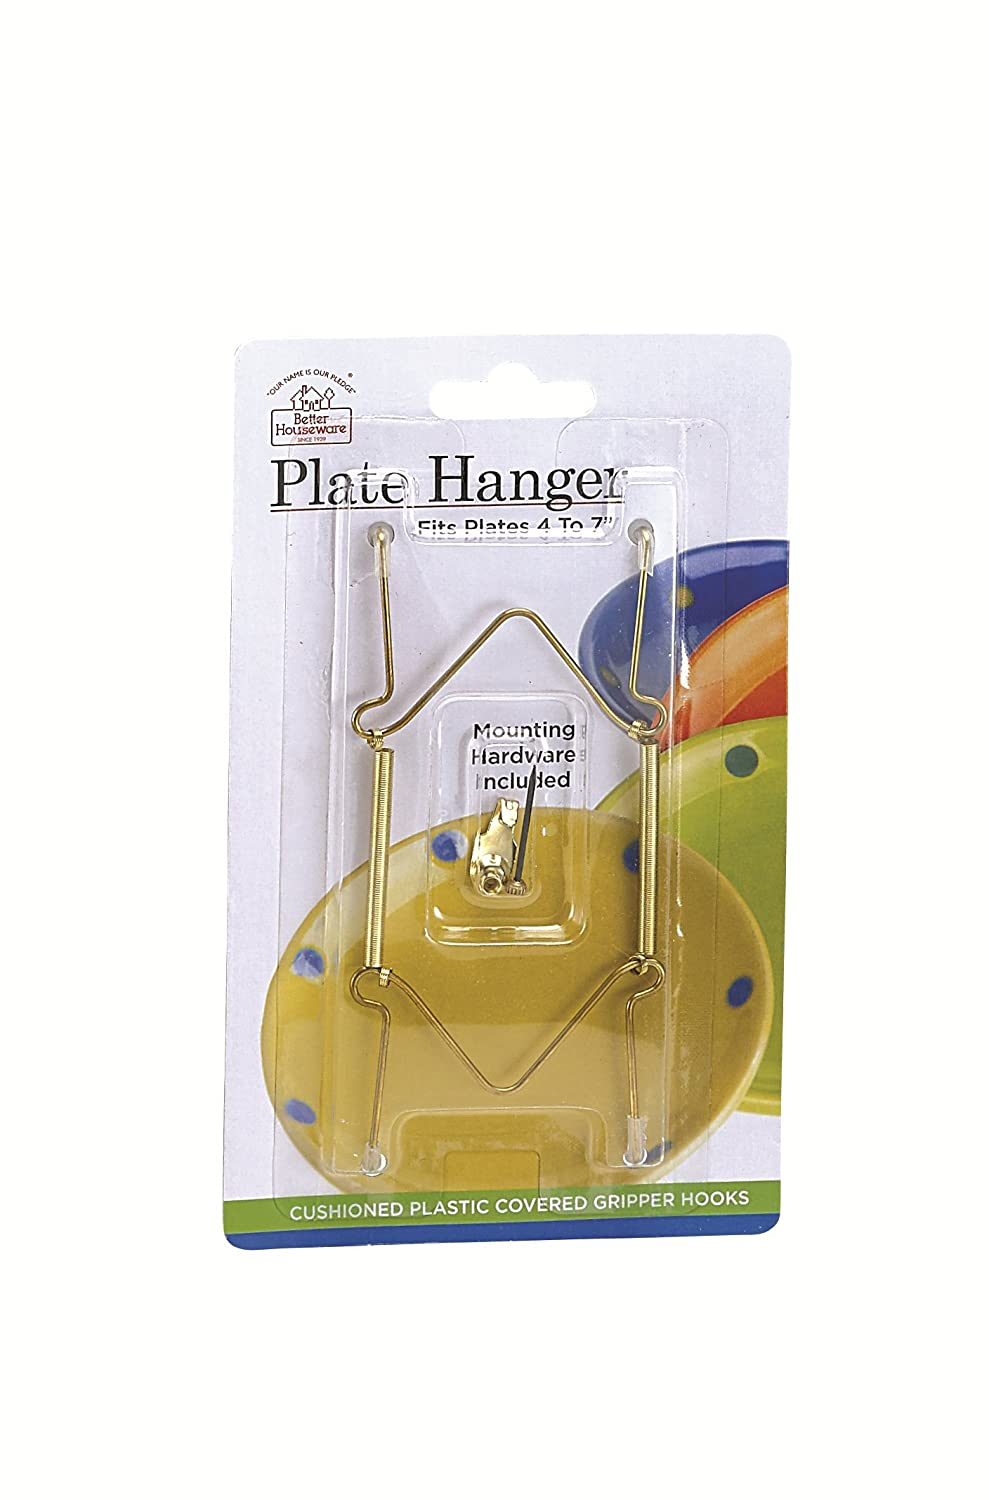 Amazon.com: Better Houseware Plate Hanger: Home & Kitchen